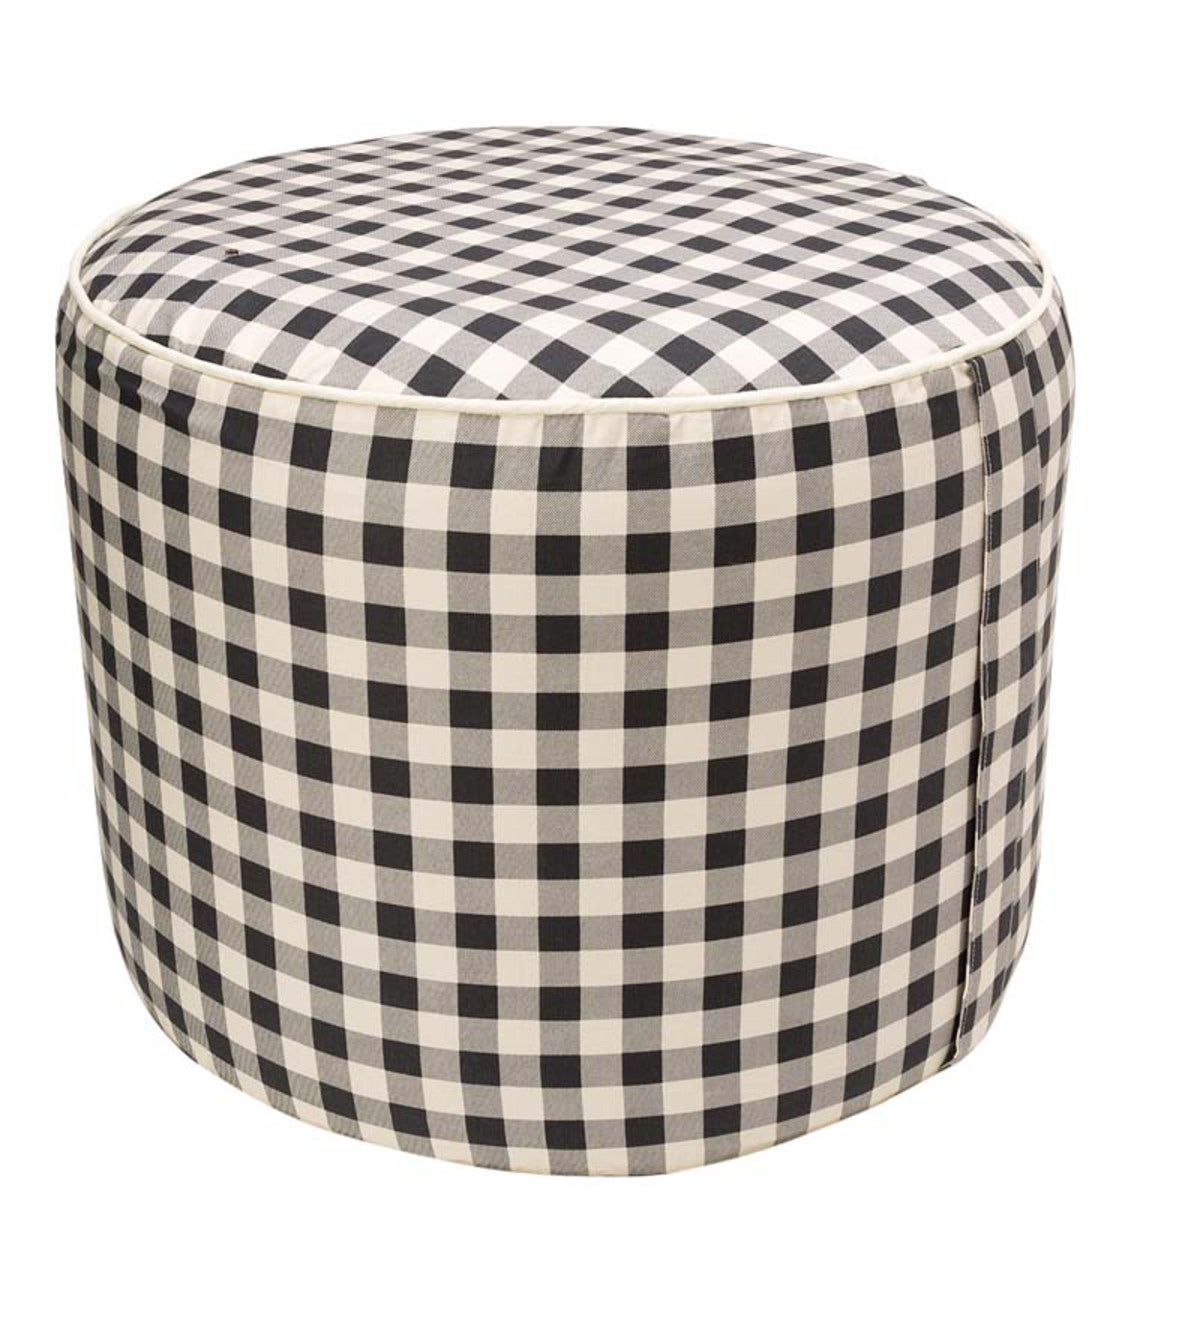 Large Round Inflatable Indoor Ottoman Pouf - Black Check